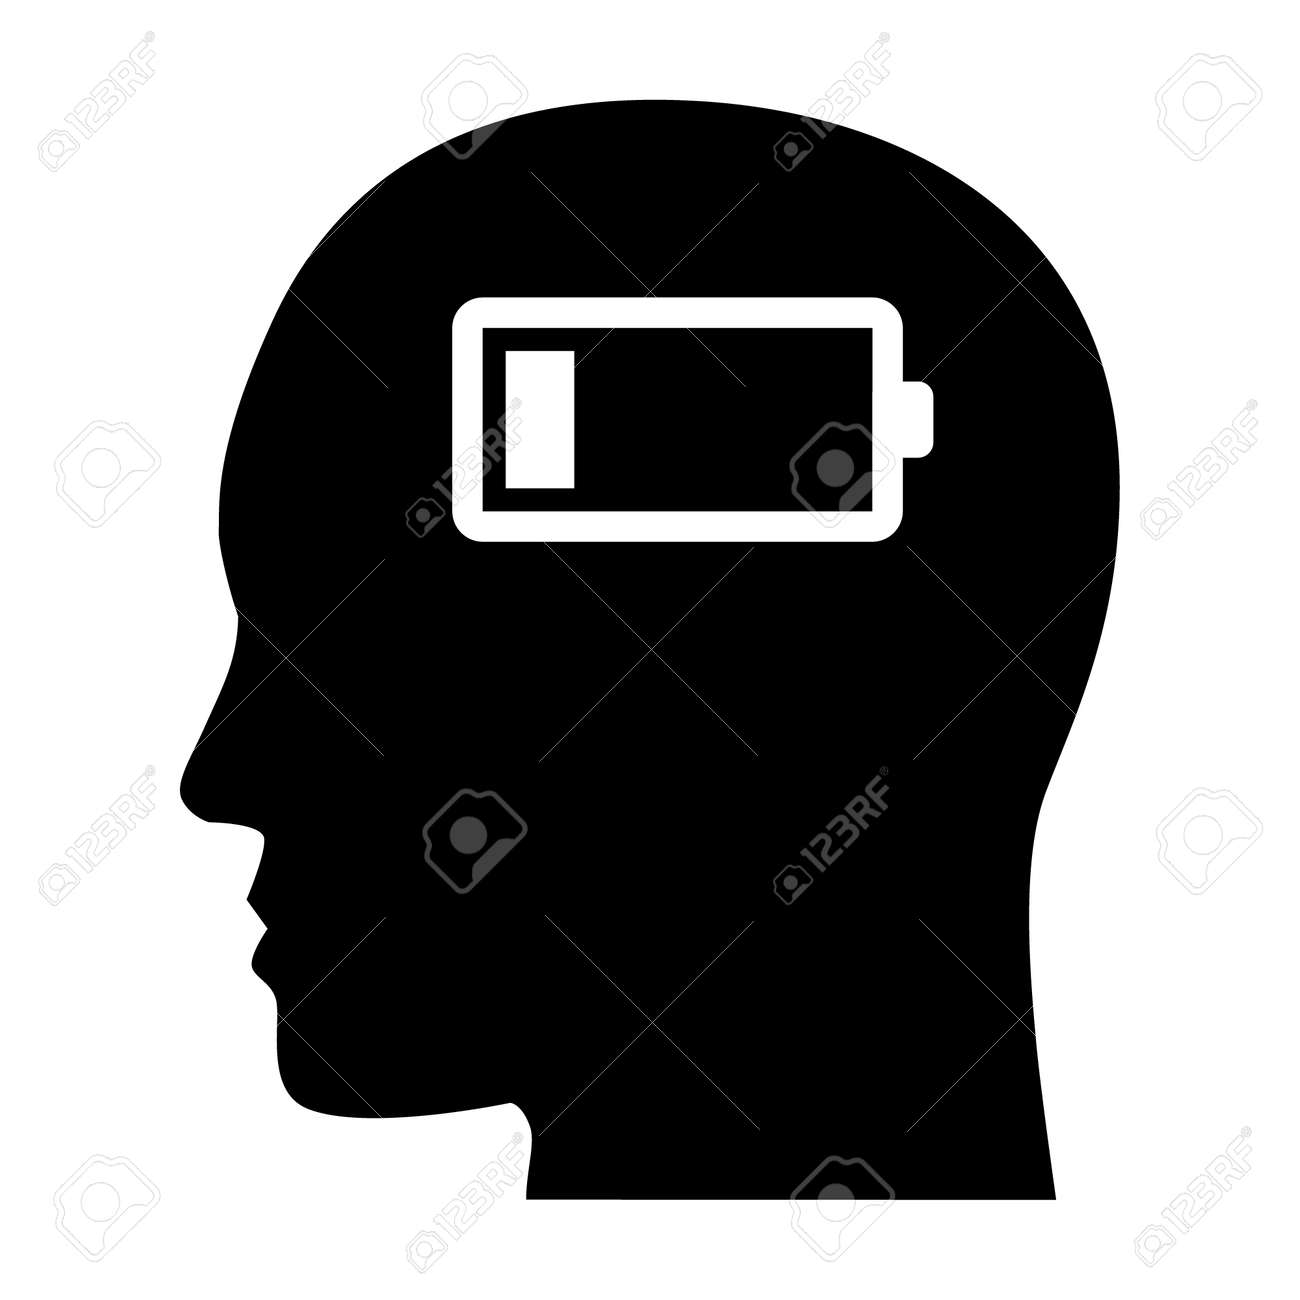 Emotionally drained, mentally drained or emotional exhaustion flat vector icon for mental health apps and websites - 161092818